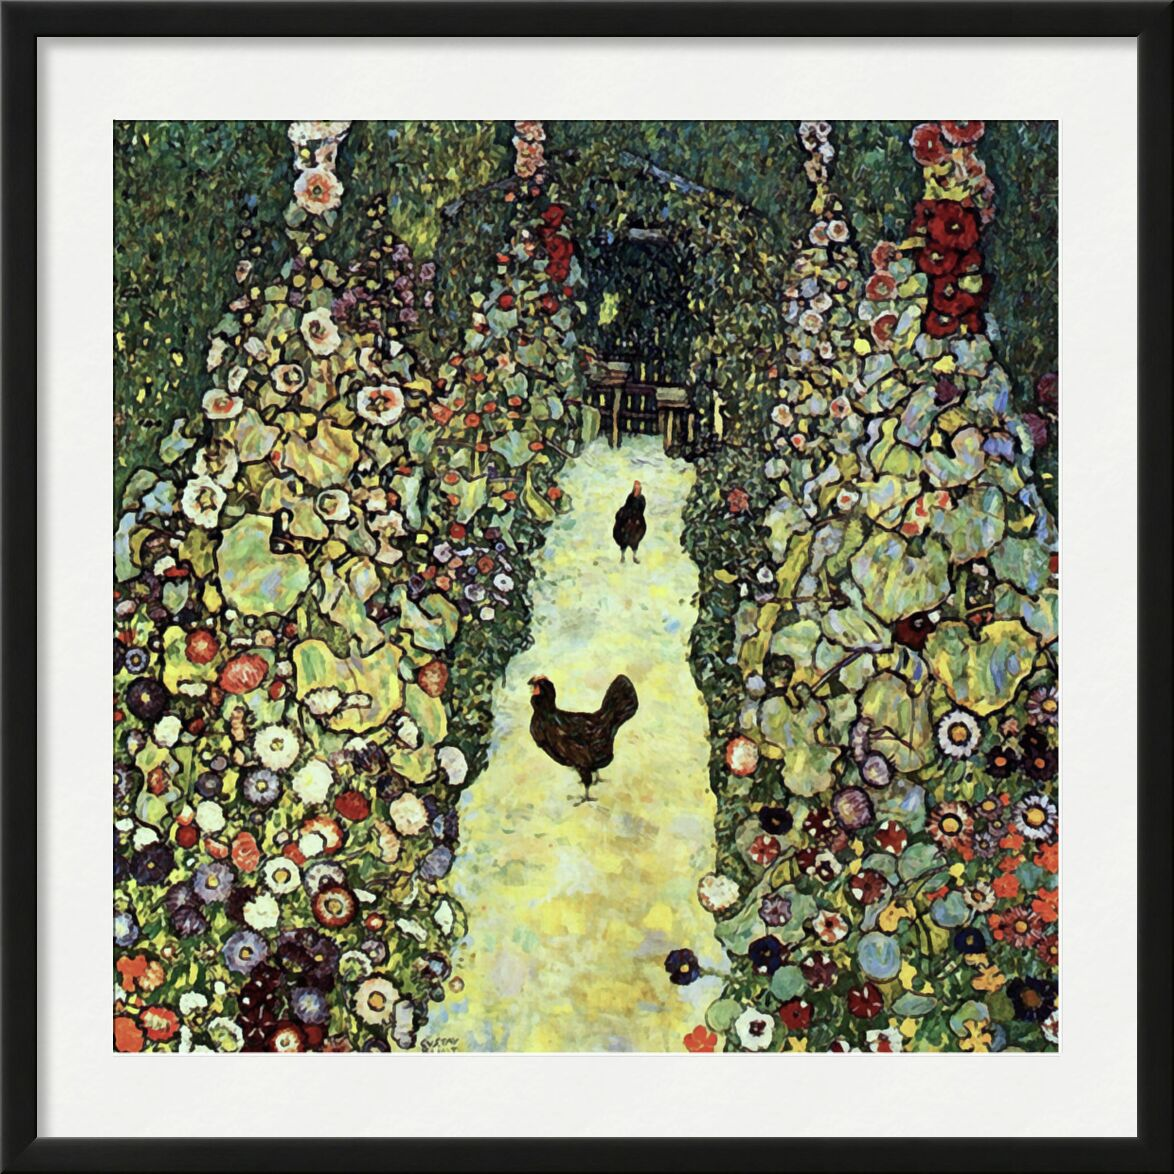 Garden Path with Chickens - Gustav Klimt from AUX BEAUX-ARTS, Prodi Art, KLIMT, nature, farm, peasant, agriculture, painting, hen, countryside, chicken